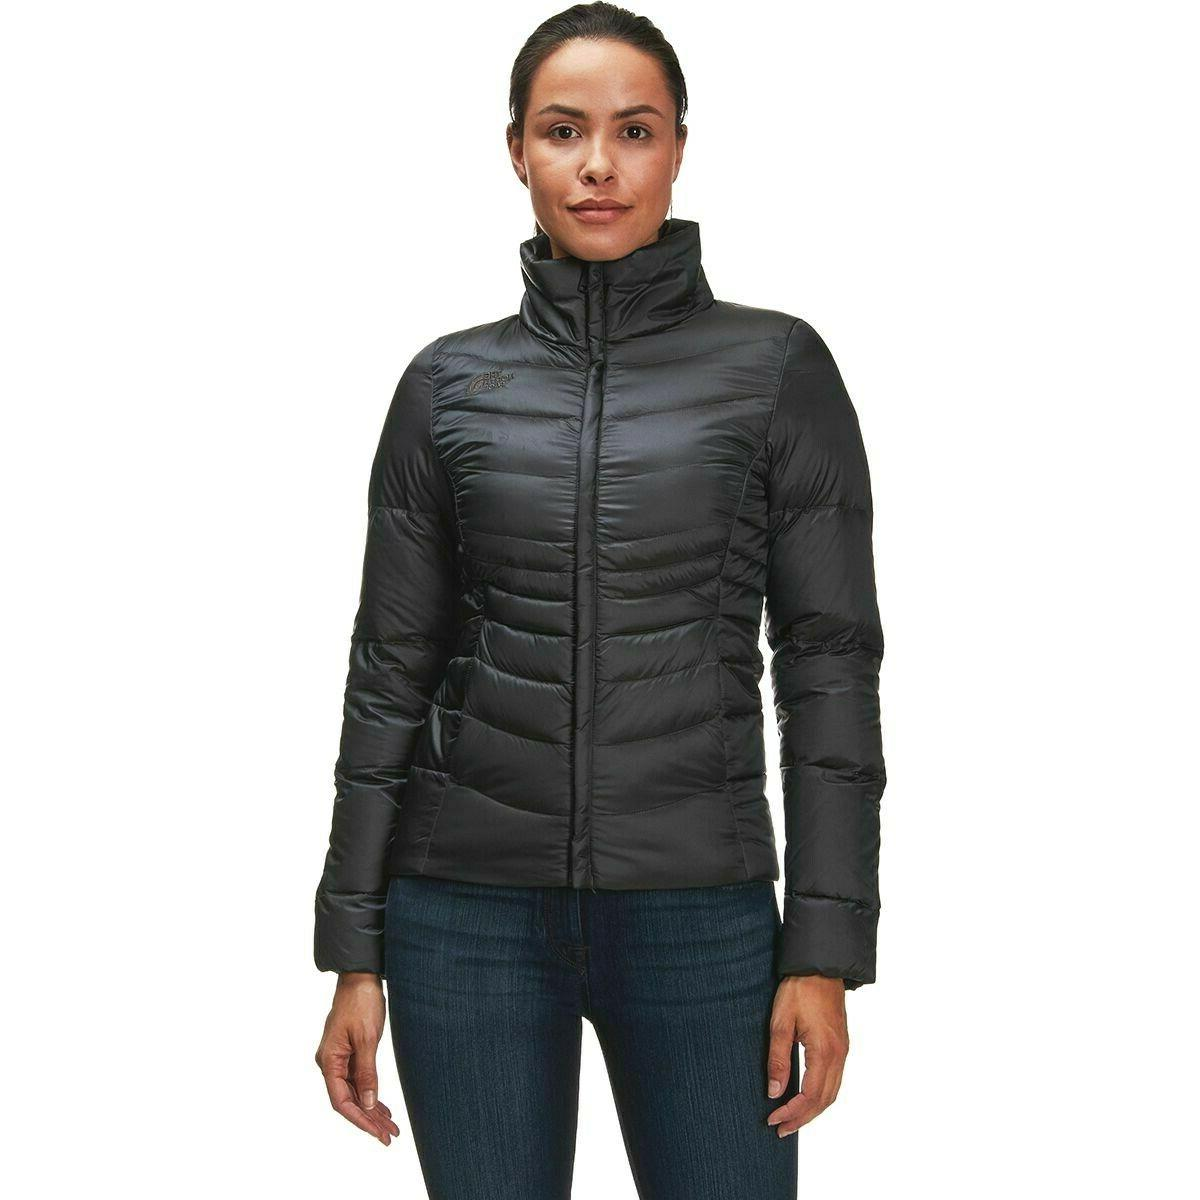 NWT The North Face Women's Aconcagua II Down Jacket Size M S